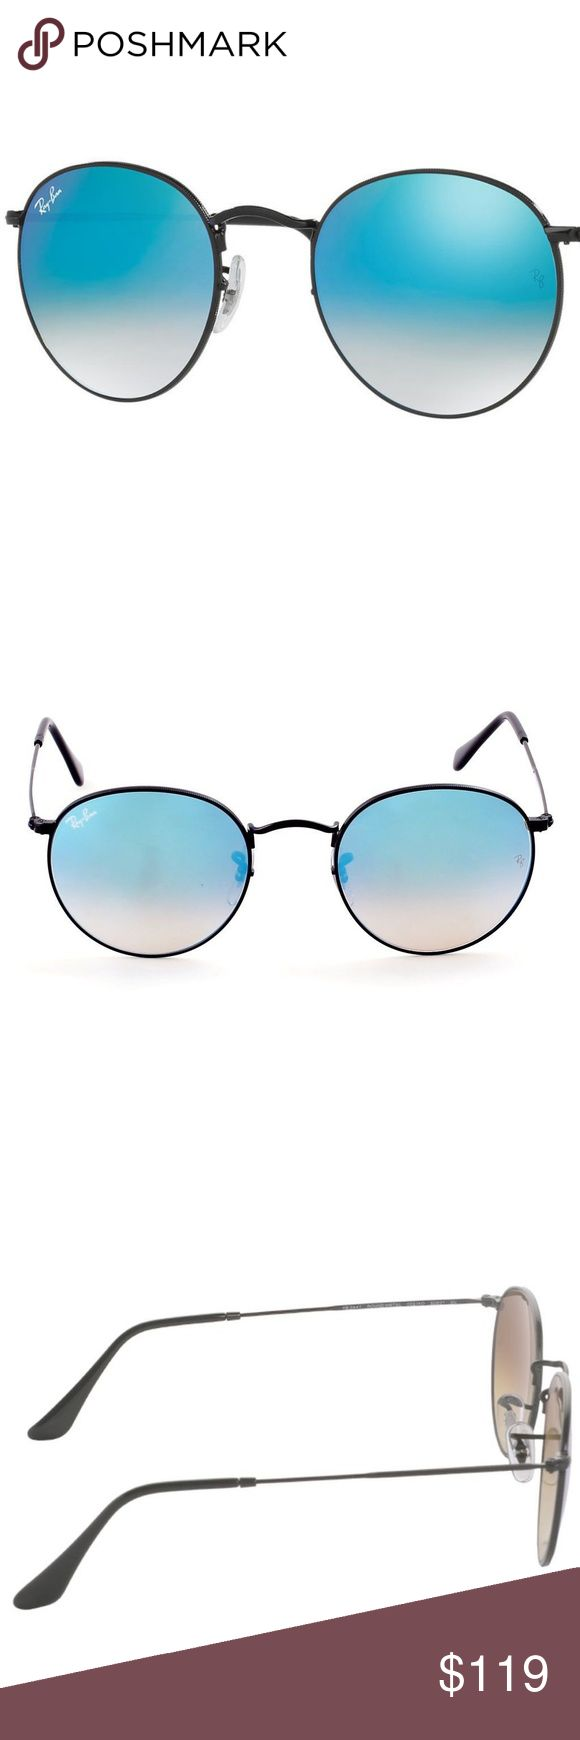 Ray-Ban 'Icons' 50mm Round Sunglasses - Black/Blue Ray-Ban 'Icons' 50mm Round Sunglasses - Black/Blue RB3447  Round, iridescent lenses and a lightweight tubular frame define retro-chic sunglasses in a classic, '60s-inspired silhouette. 50mm lens width; 21mm bridge width; 145mm temple length. 100% UV protection. Metal. By Ray-Ban; made in Italy. Ray-Ban Accessories Sunglasses